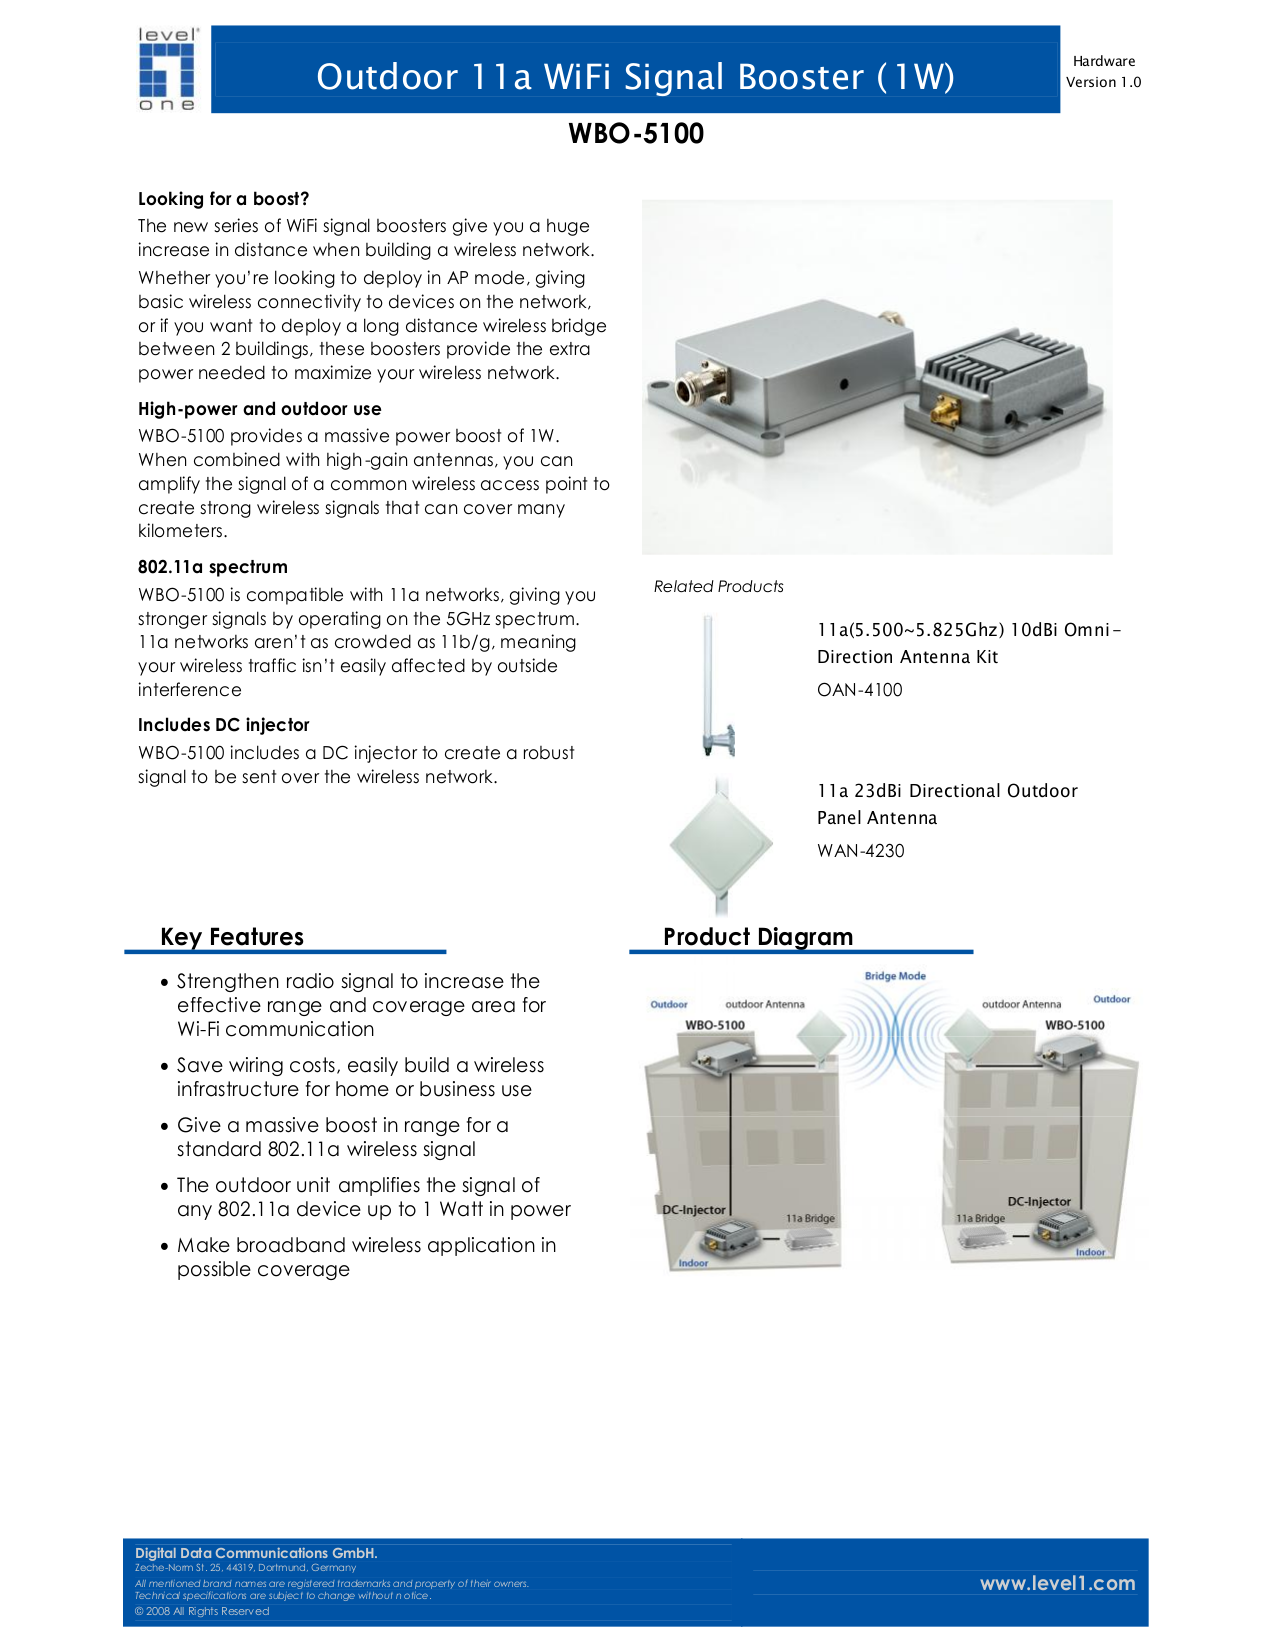 pdf for LevelOne Other WBO-5100 WiFi Signal Boosters manual